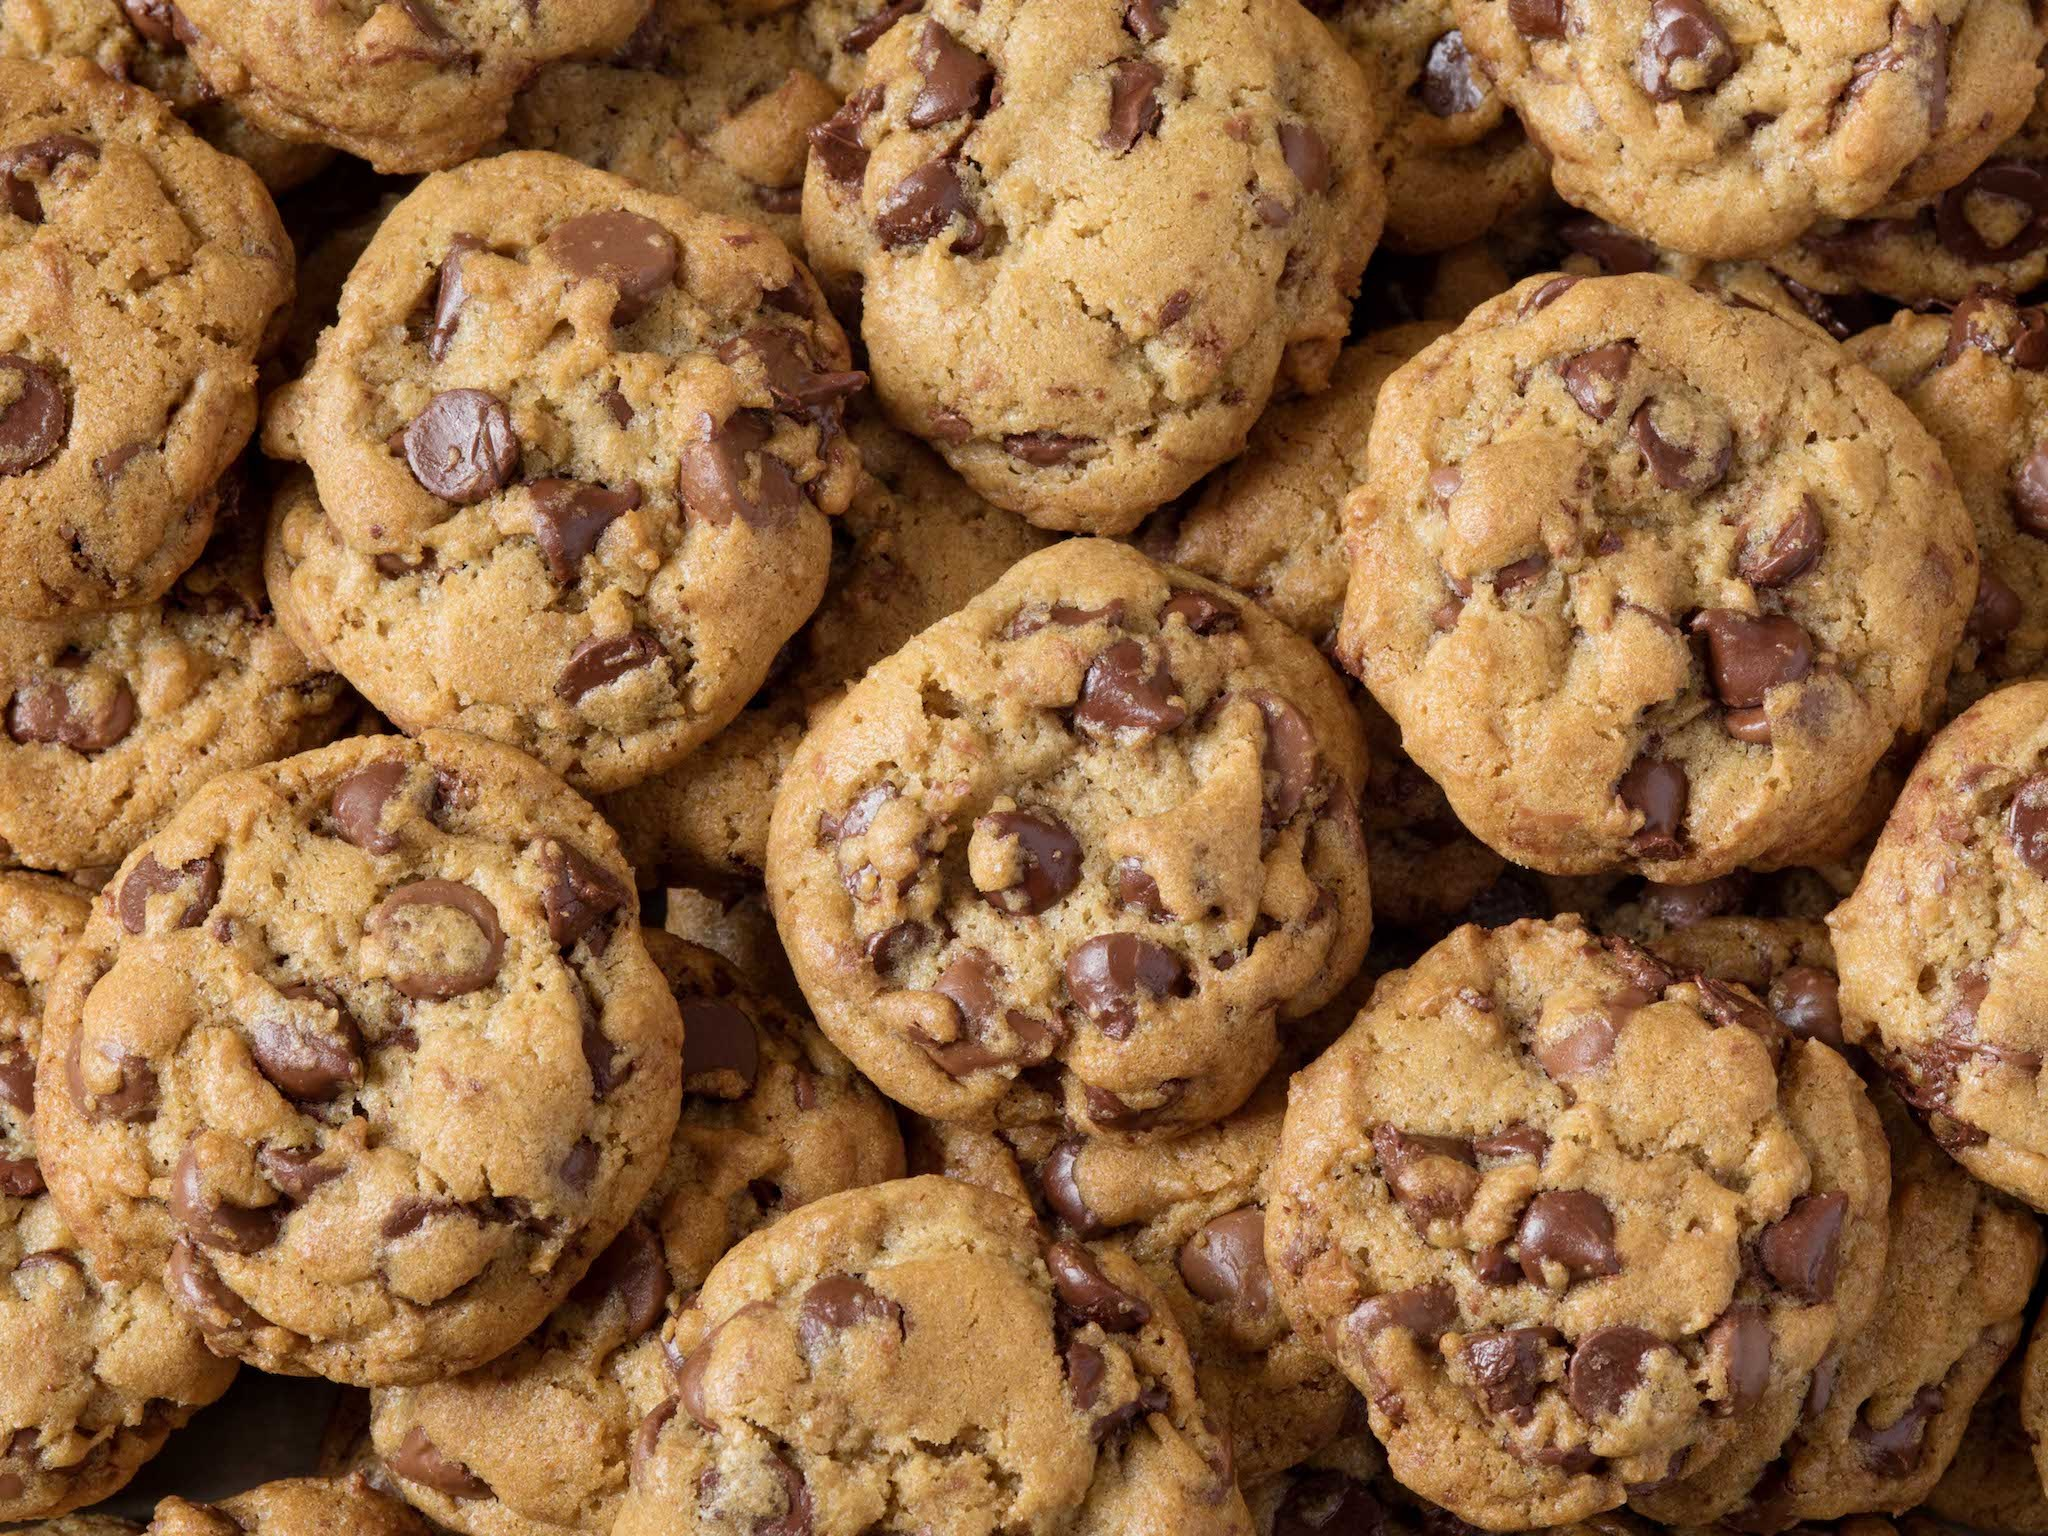 This Brooklyn bar has launched a cookie delivery service